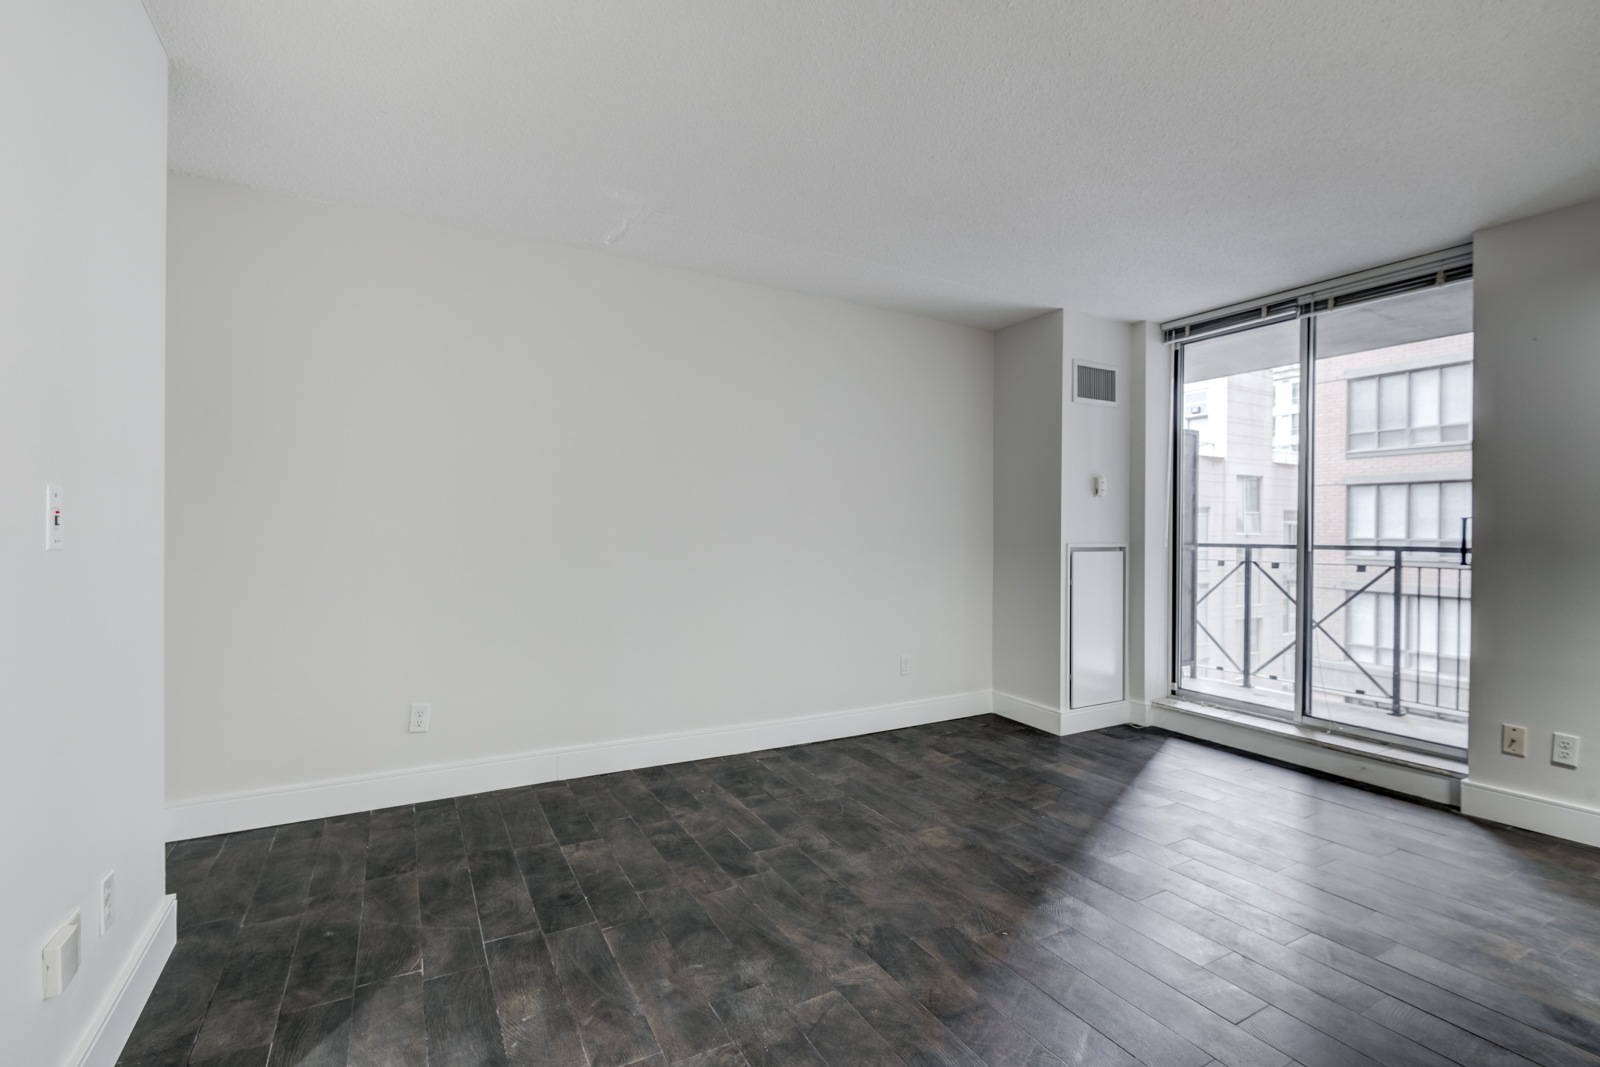 Empty condo with view of balcony and light.